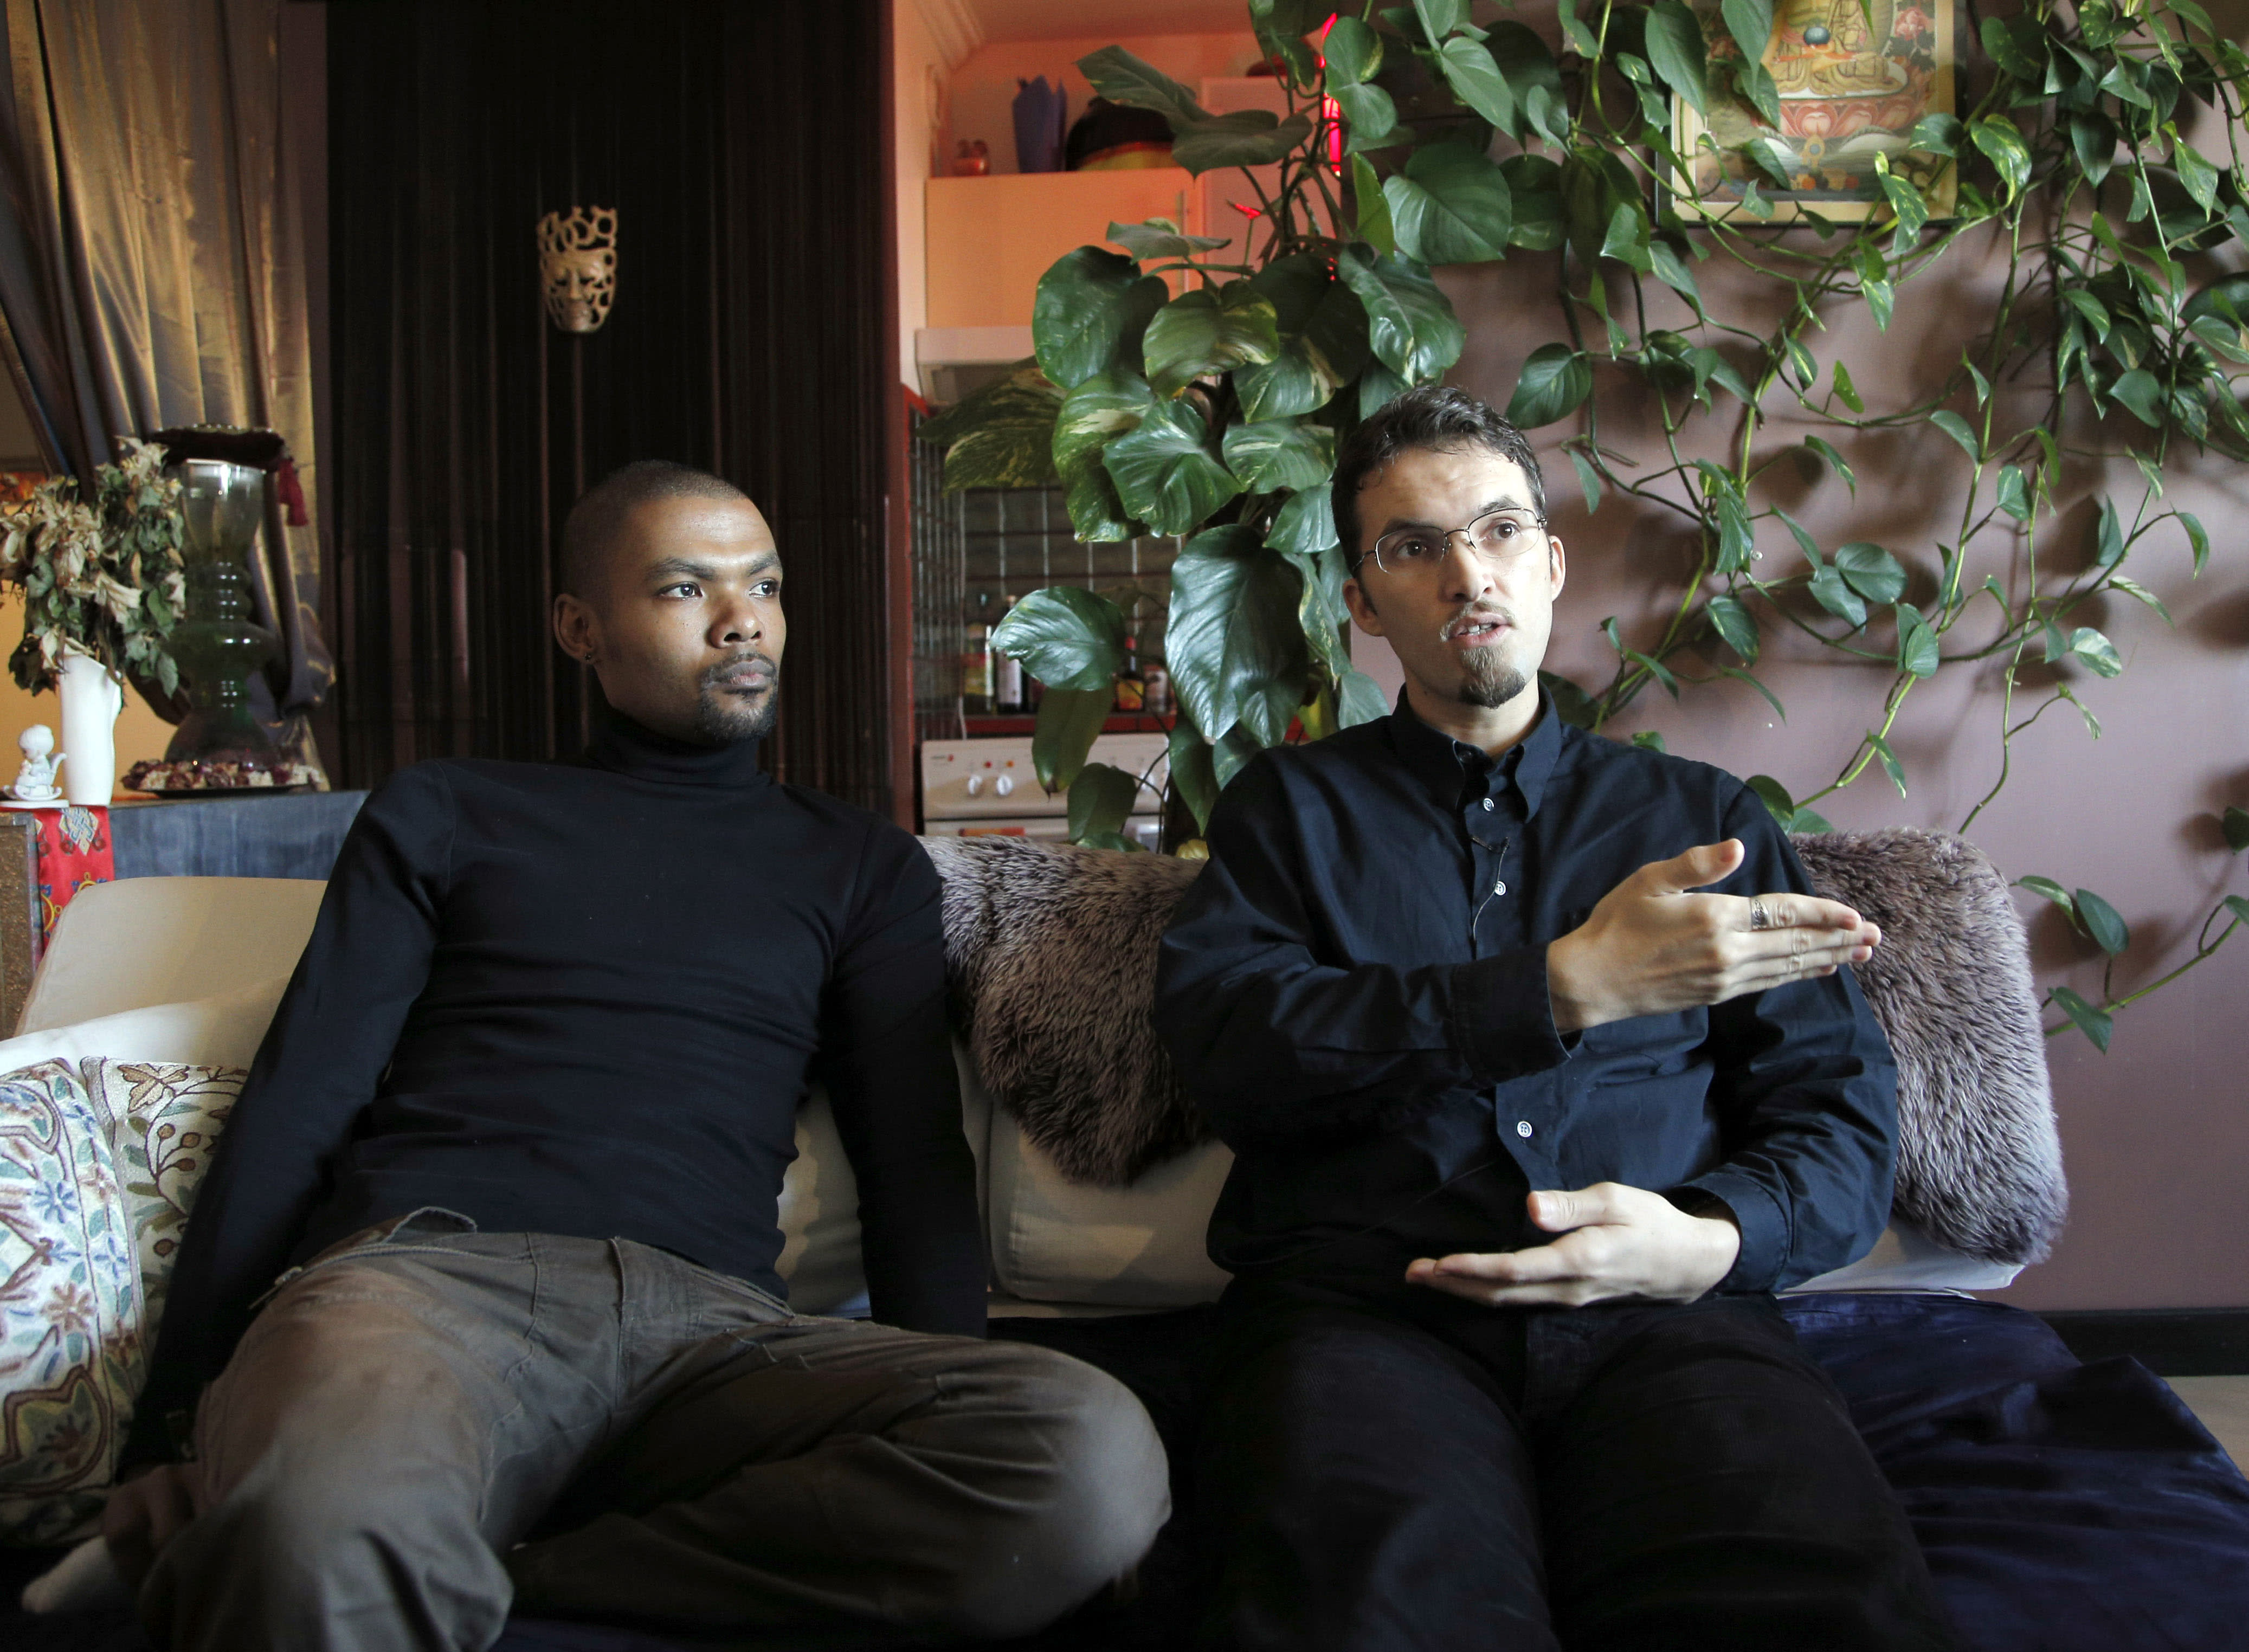 """In this photo taken on Monday, Oct. 22, 2012, Ludovic-Mohamed Zahed, right, who married his live-in partner Qiyaammudeen Jantjies, left, in South Africa, where gay marriage is recognized, during an interview with the Associated Press in Sevran, outside Paris. A plan to legalize same-sex marriage and allow gay couples to adopt was a liberal cornerstone of French President Francois Hollande's election manifesto earlier this year. It looked like a shoo-in, supported by a majority of the French, and an easy way to break with his conservative predecessor. But that was then, Now, as the Socialist government prepares to unveil its draft """"marriage for everyone"""" law Wednesday, polls show wavering support for the idea and for the president amid increasingly vocal opposition in this traditionally Catholic country. Ludovic-Mohamed Zahed, who married his live-in partner Qiyaammudeen Jantjies in South Africa, where gay marriage is recognized, is already seeking instruction from his local town council to get his marriage recognized in France as soon as he can. (AP Photo/Christophe Ena)"""